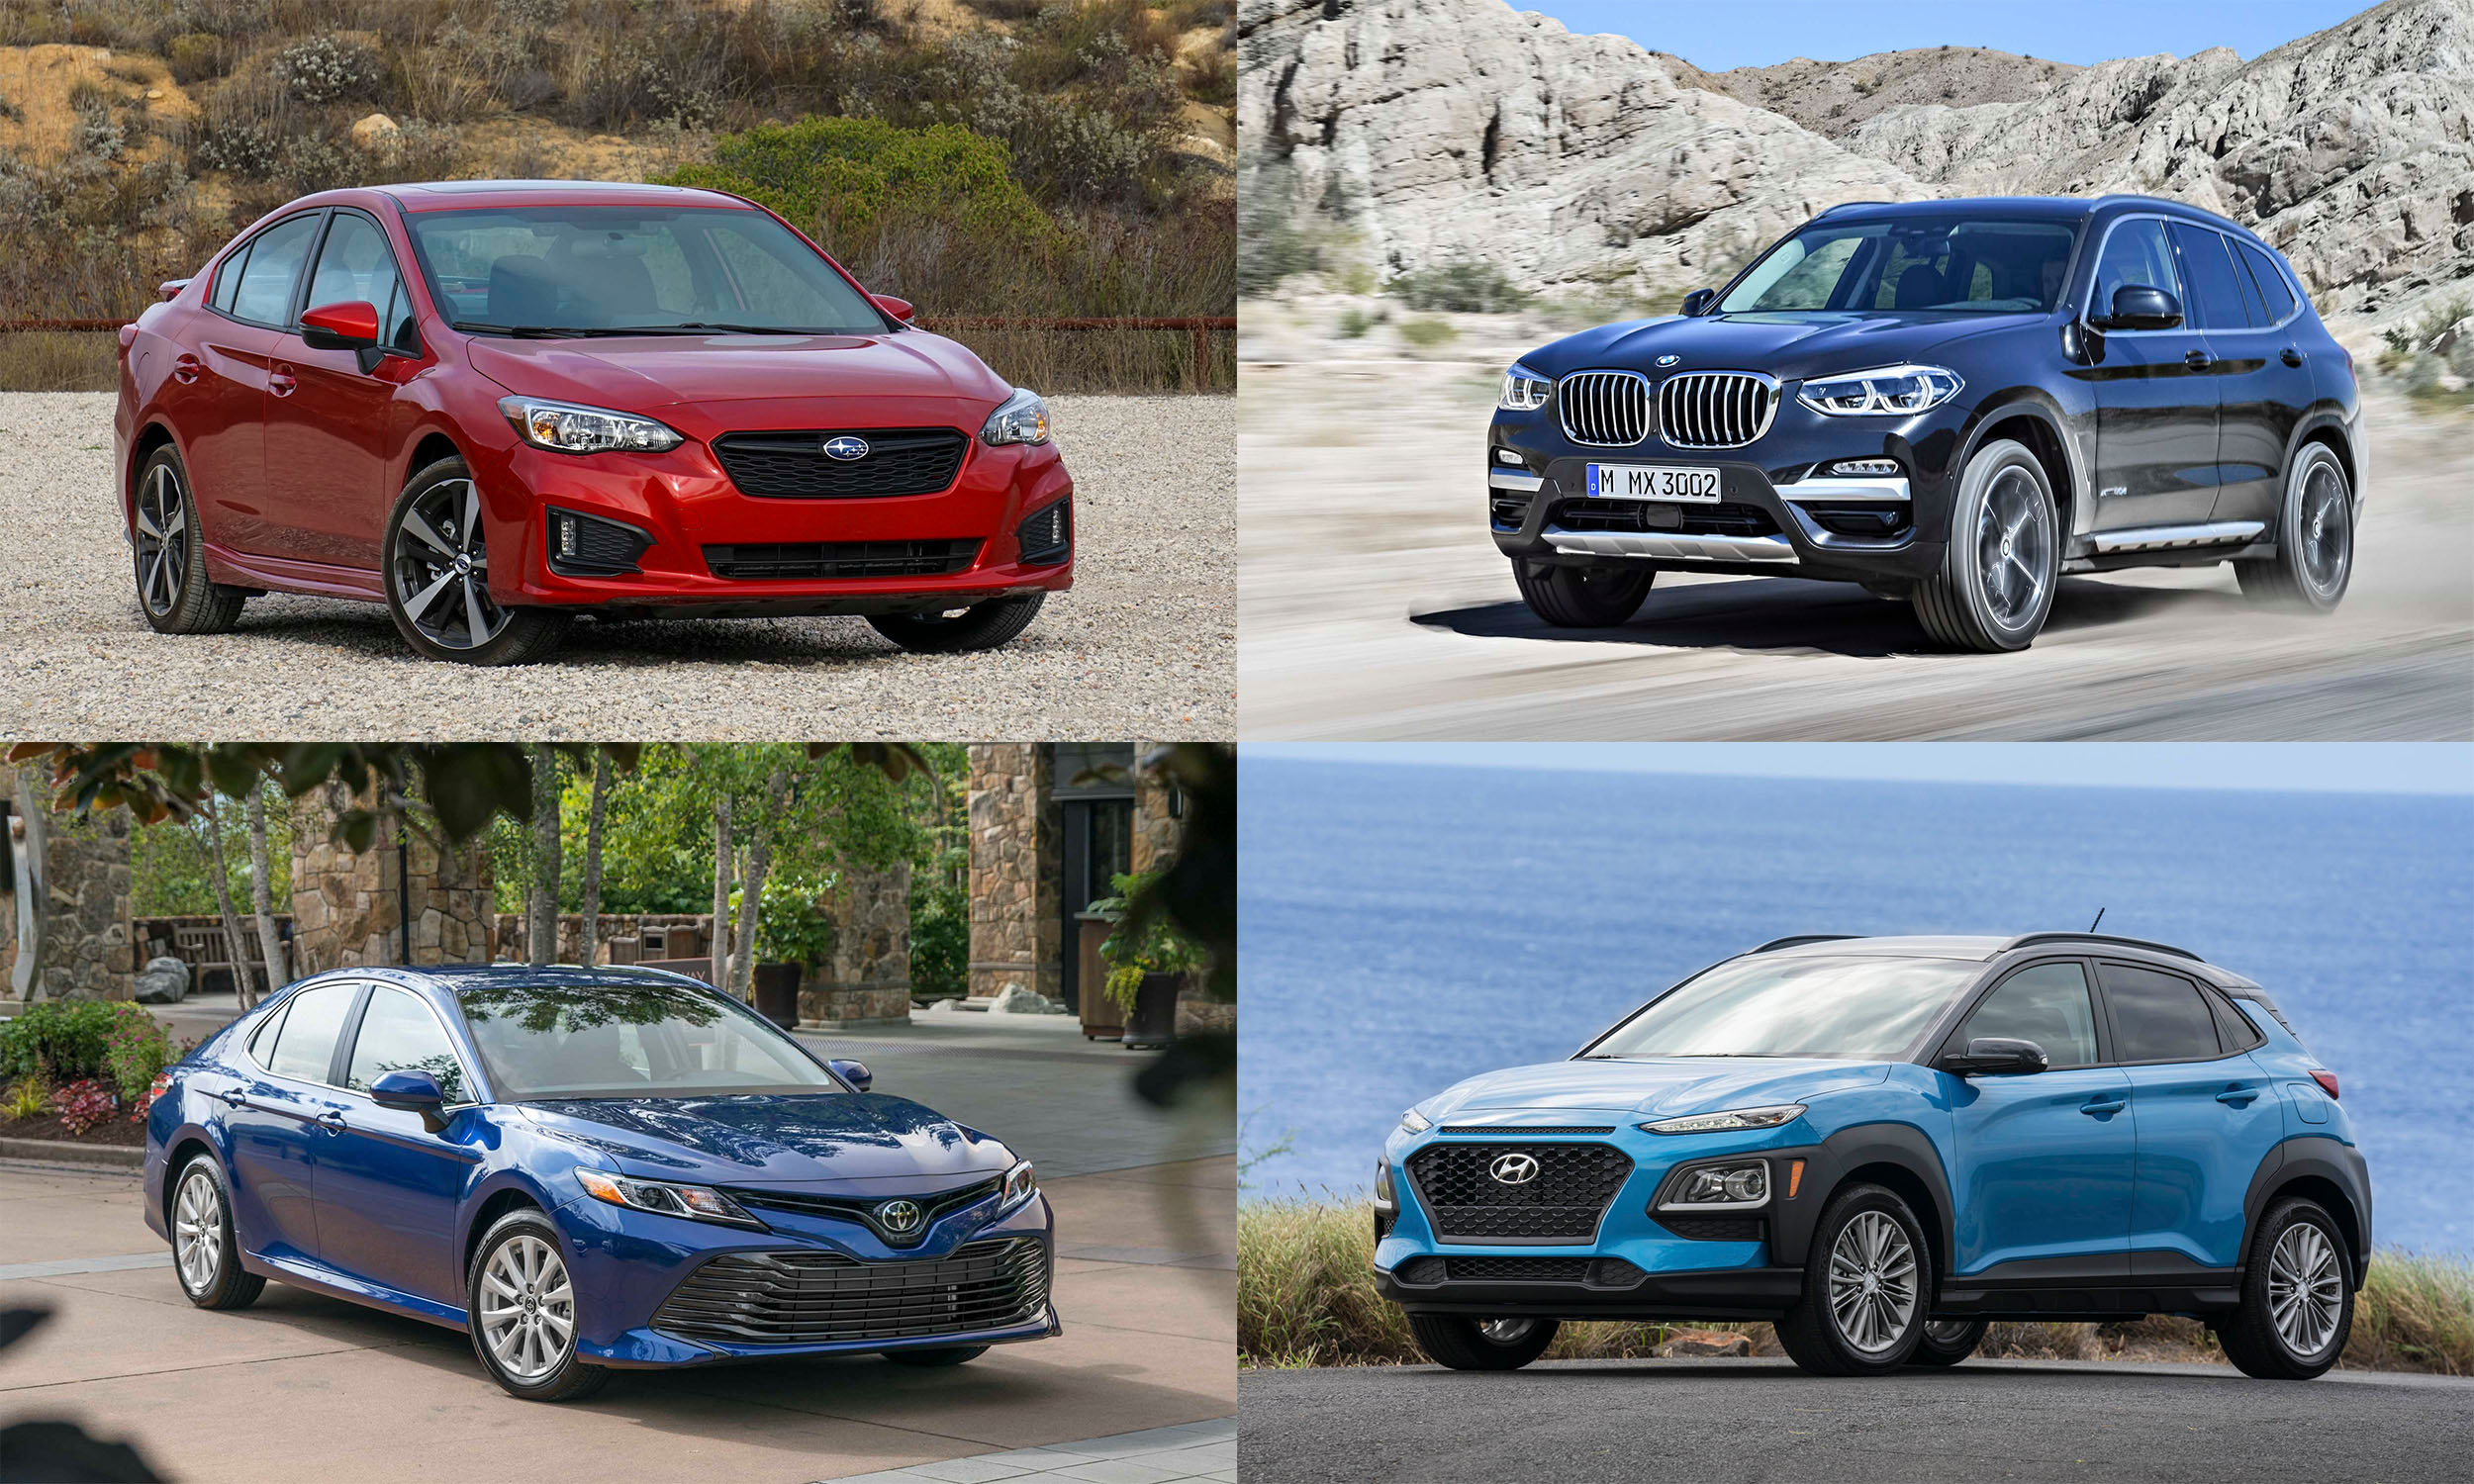 © Automotive Content Experience; © Toyota Motor Sales USA; © BMW North America; © Hyundai Motors America